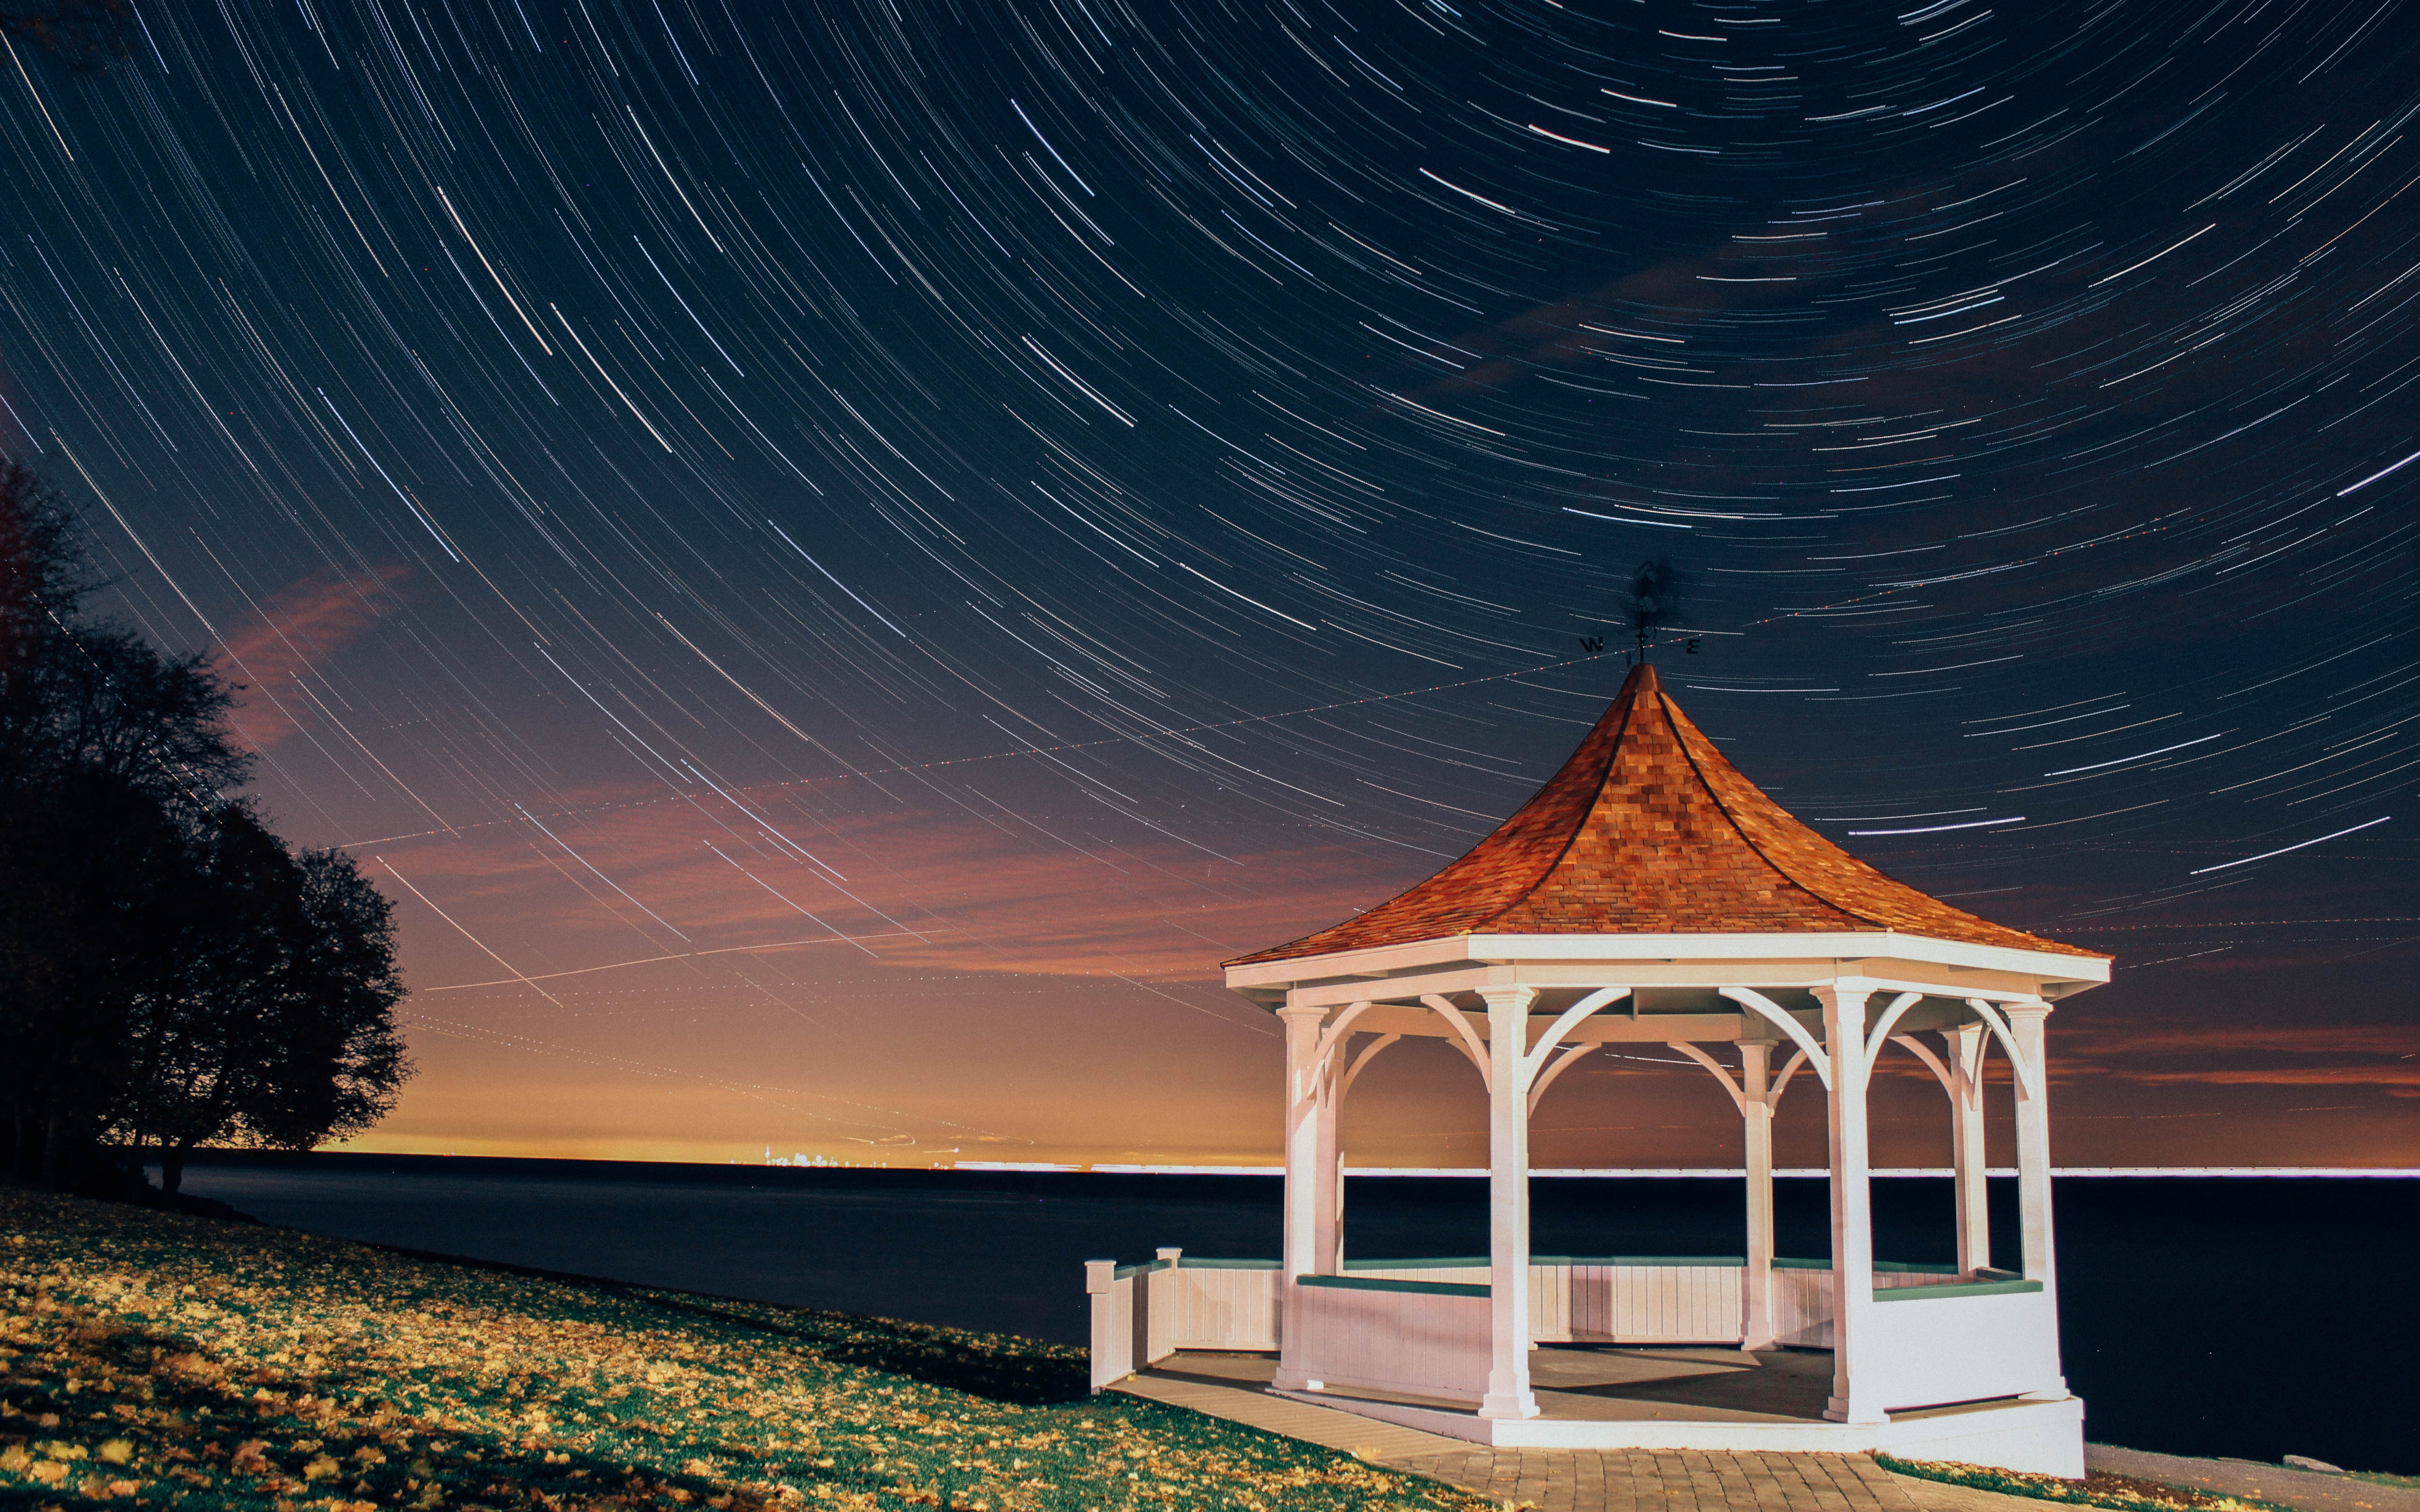 empty gazebo under starry sky